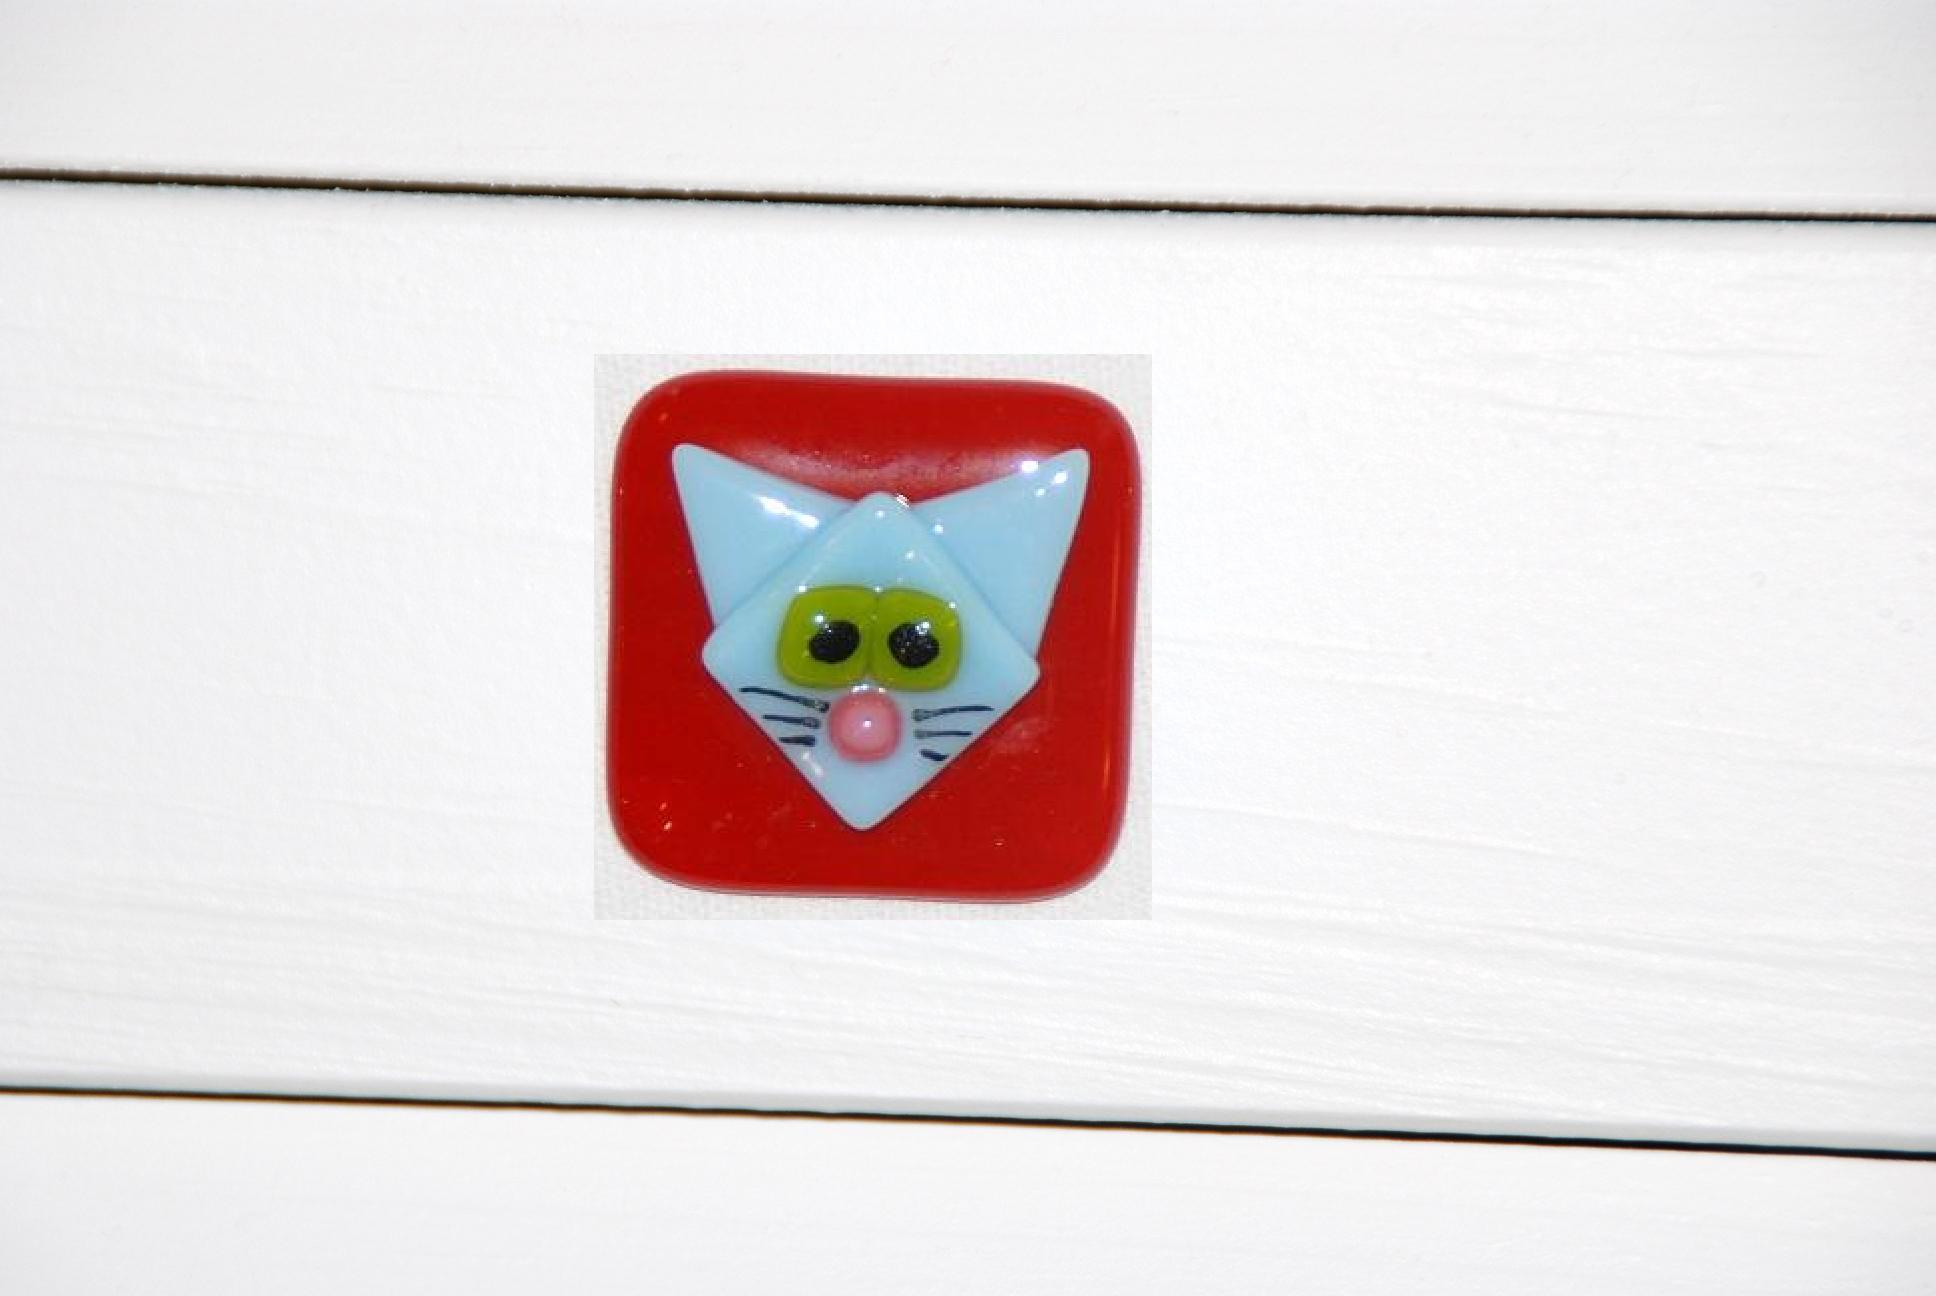 blue cat on red cabinet pull.JPG